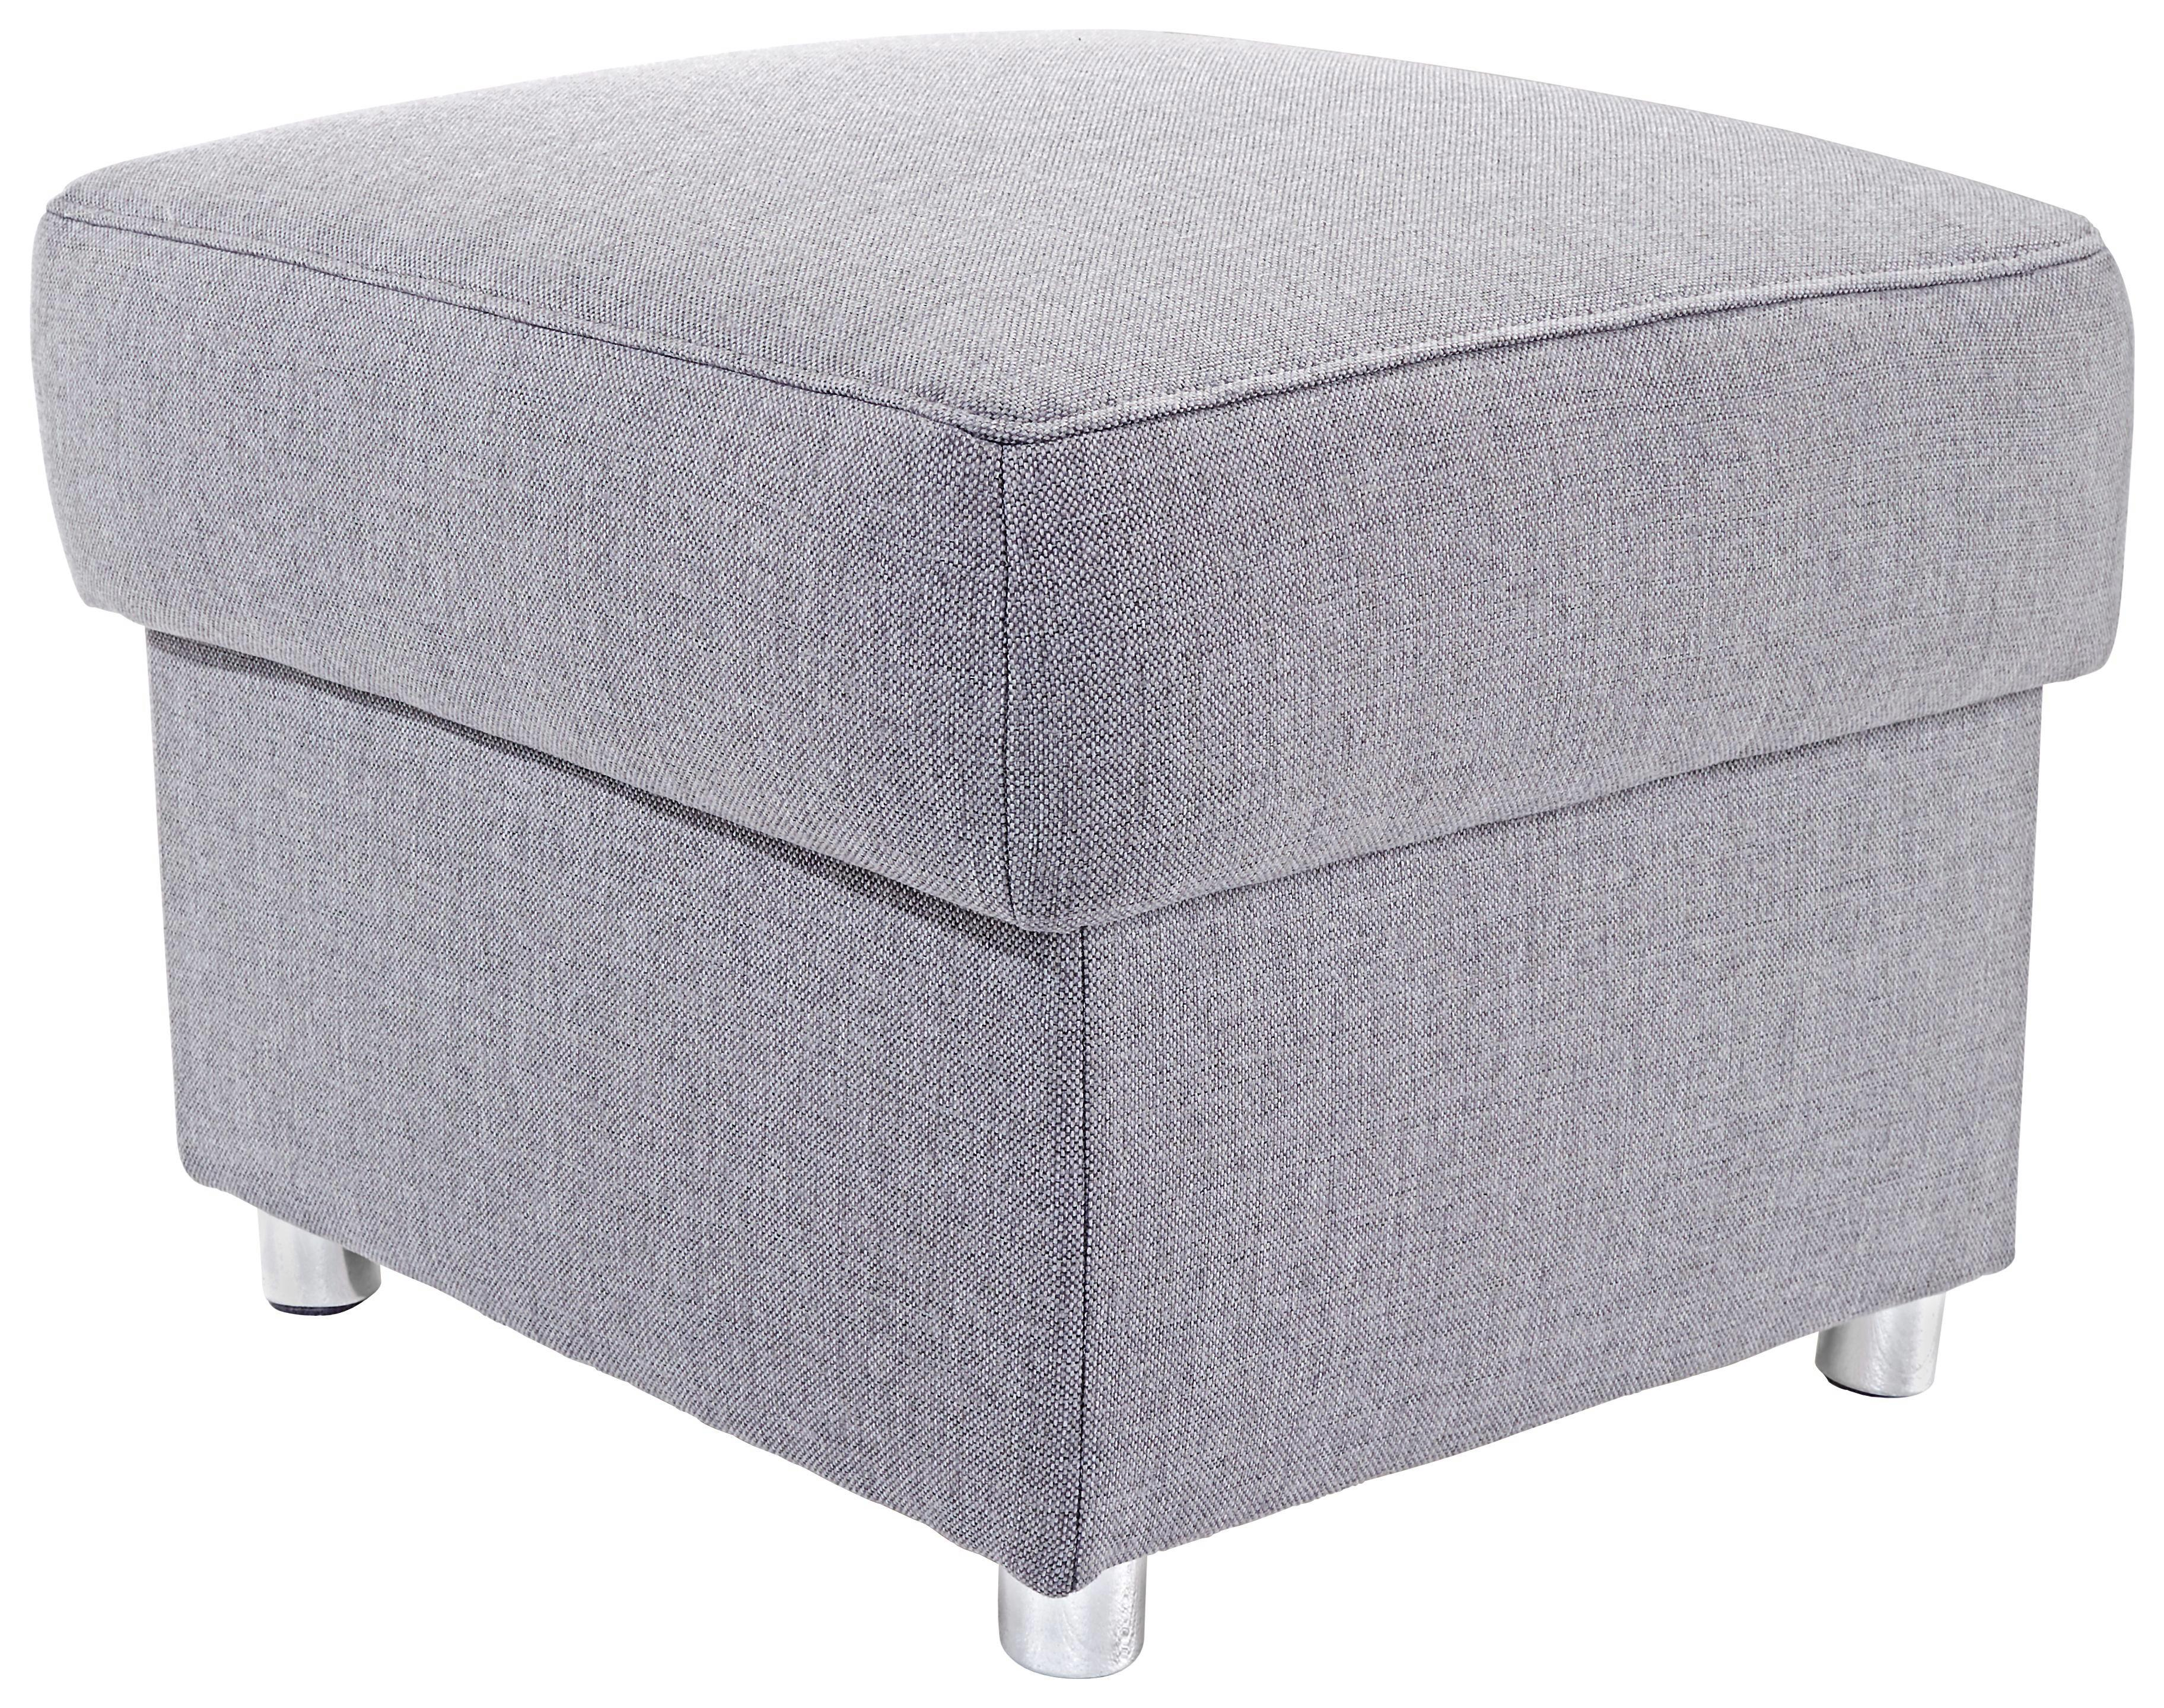 Hocker Chrom Hocker Sonoma